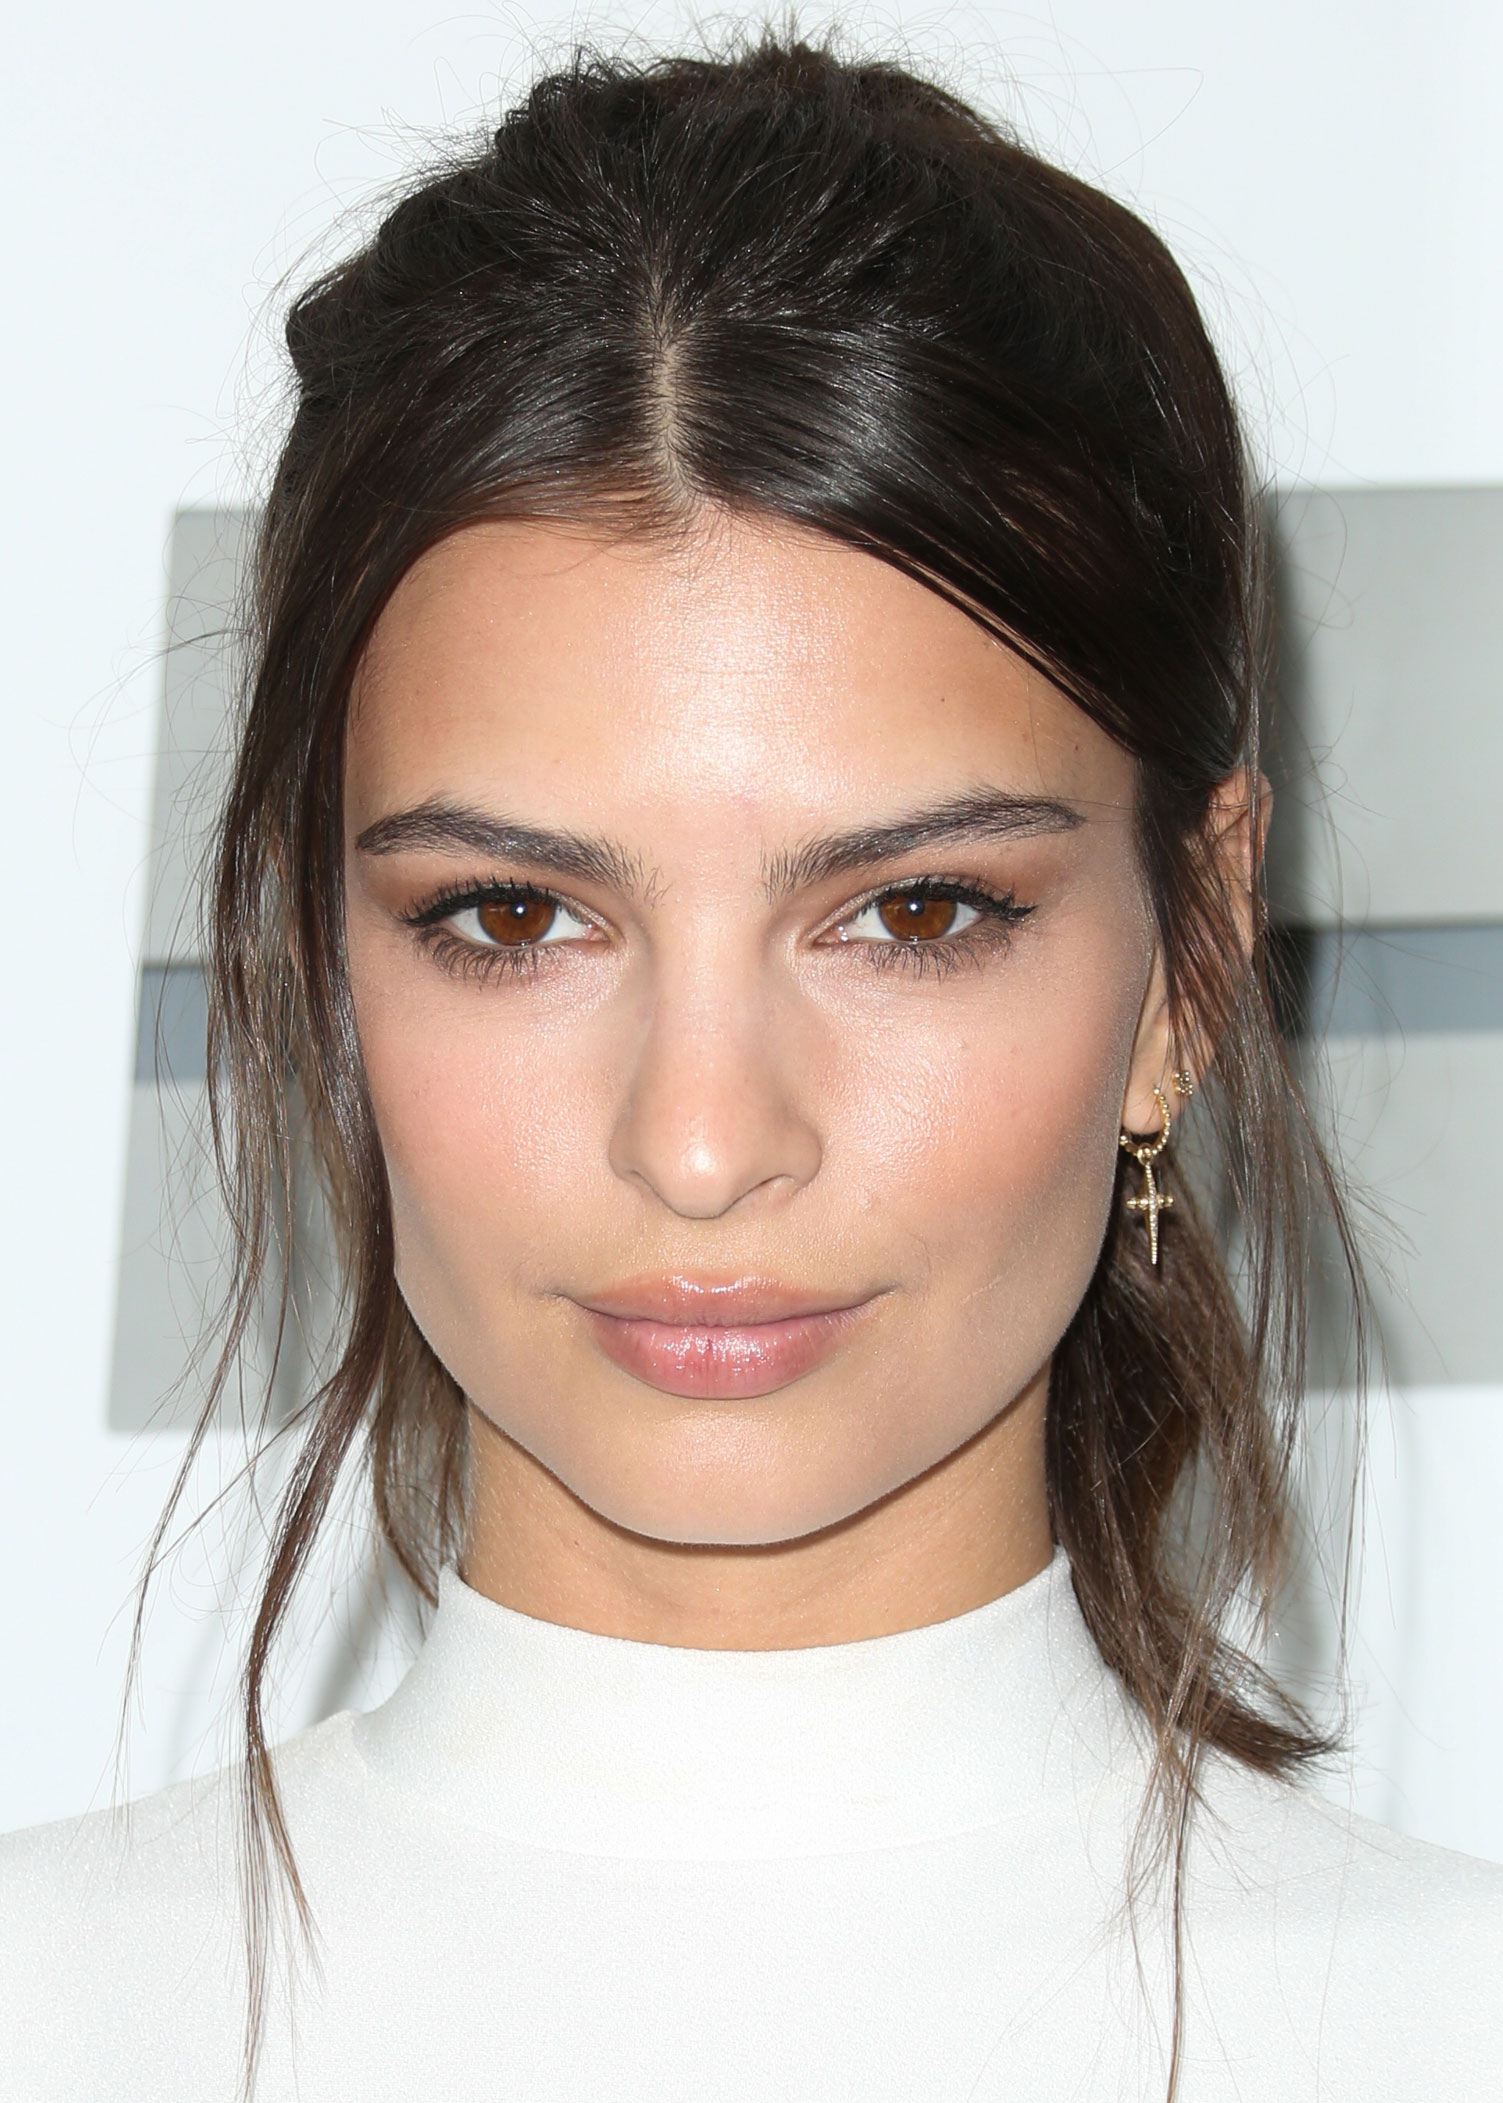 Emily Ratajkowski Pure Face - Emily Ratajkowski Net Worth, Pics, Wallpapers, Career and Biography